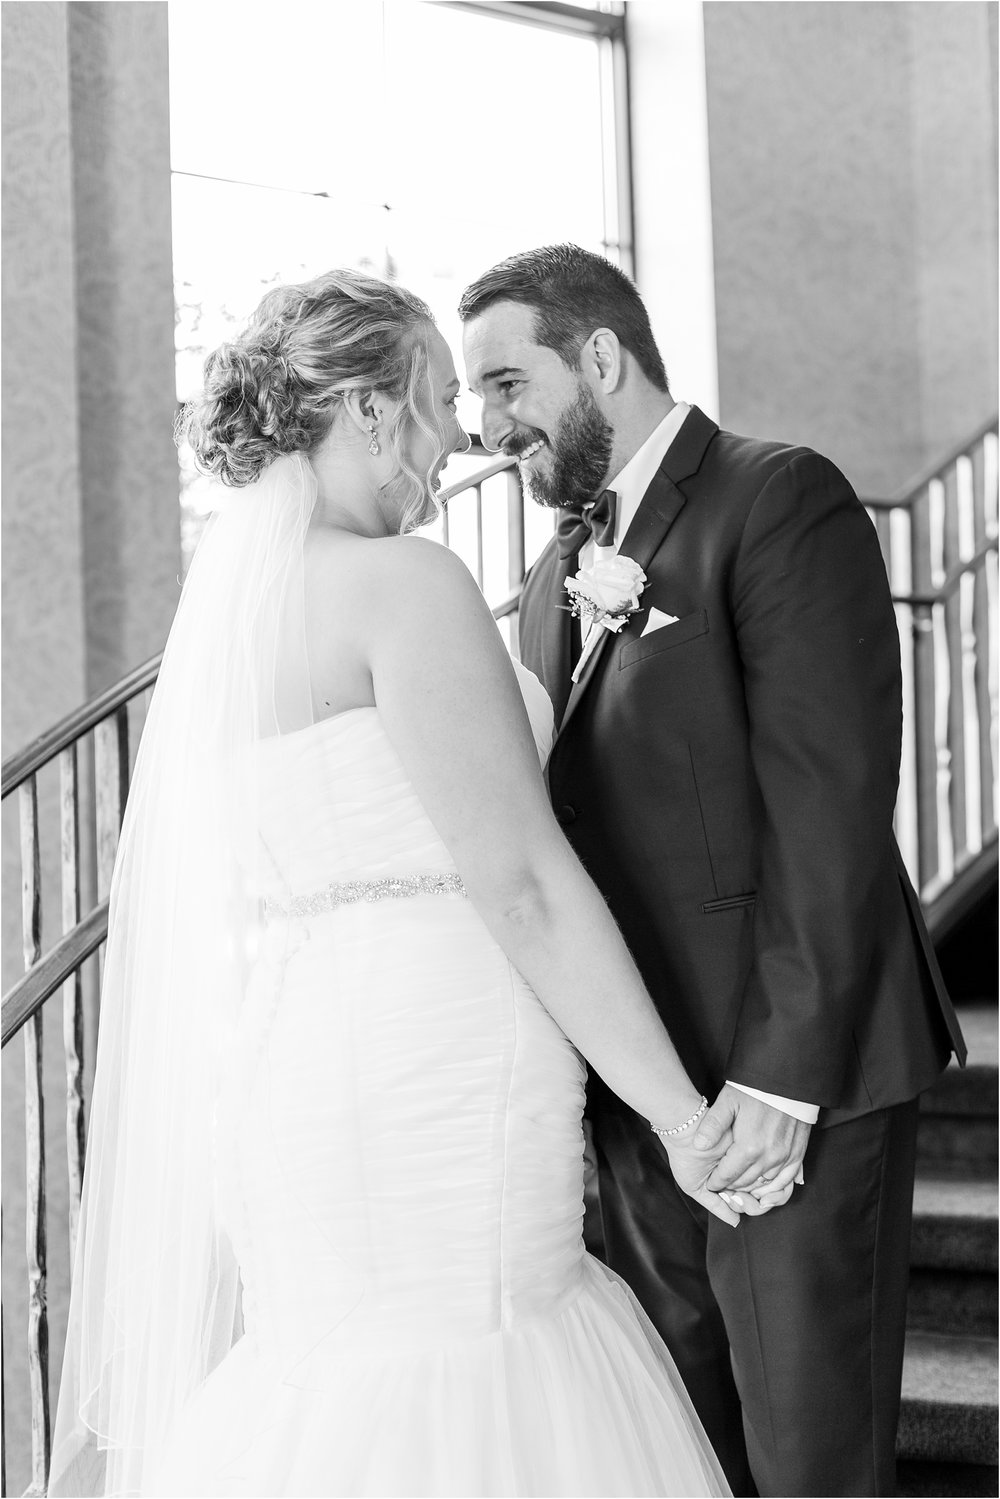 joyful-and-candid-navy-blush-wedding-photos-at-crystal-gardens-in-howell-mi-by-courtney-carolyn-photography_0075.jpg